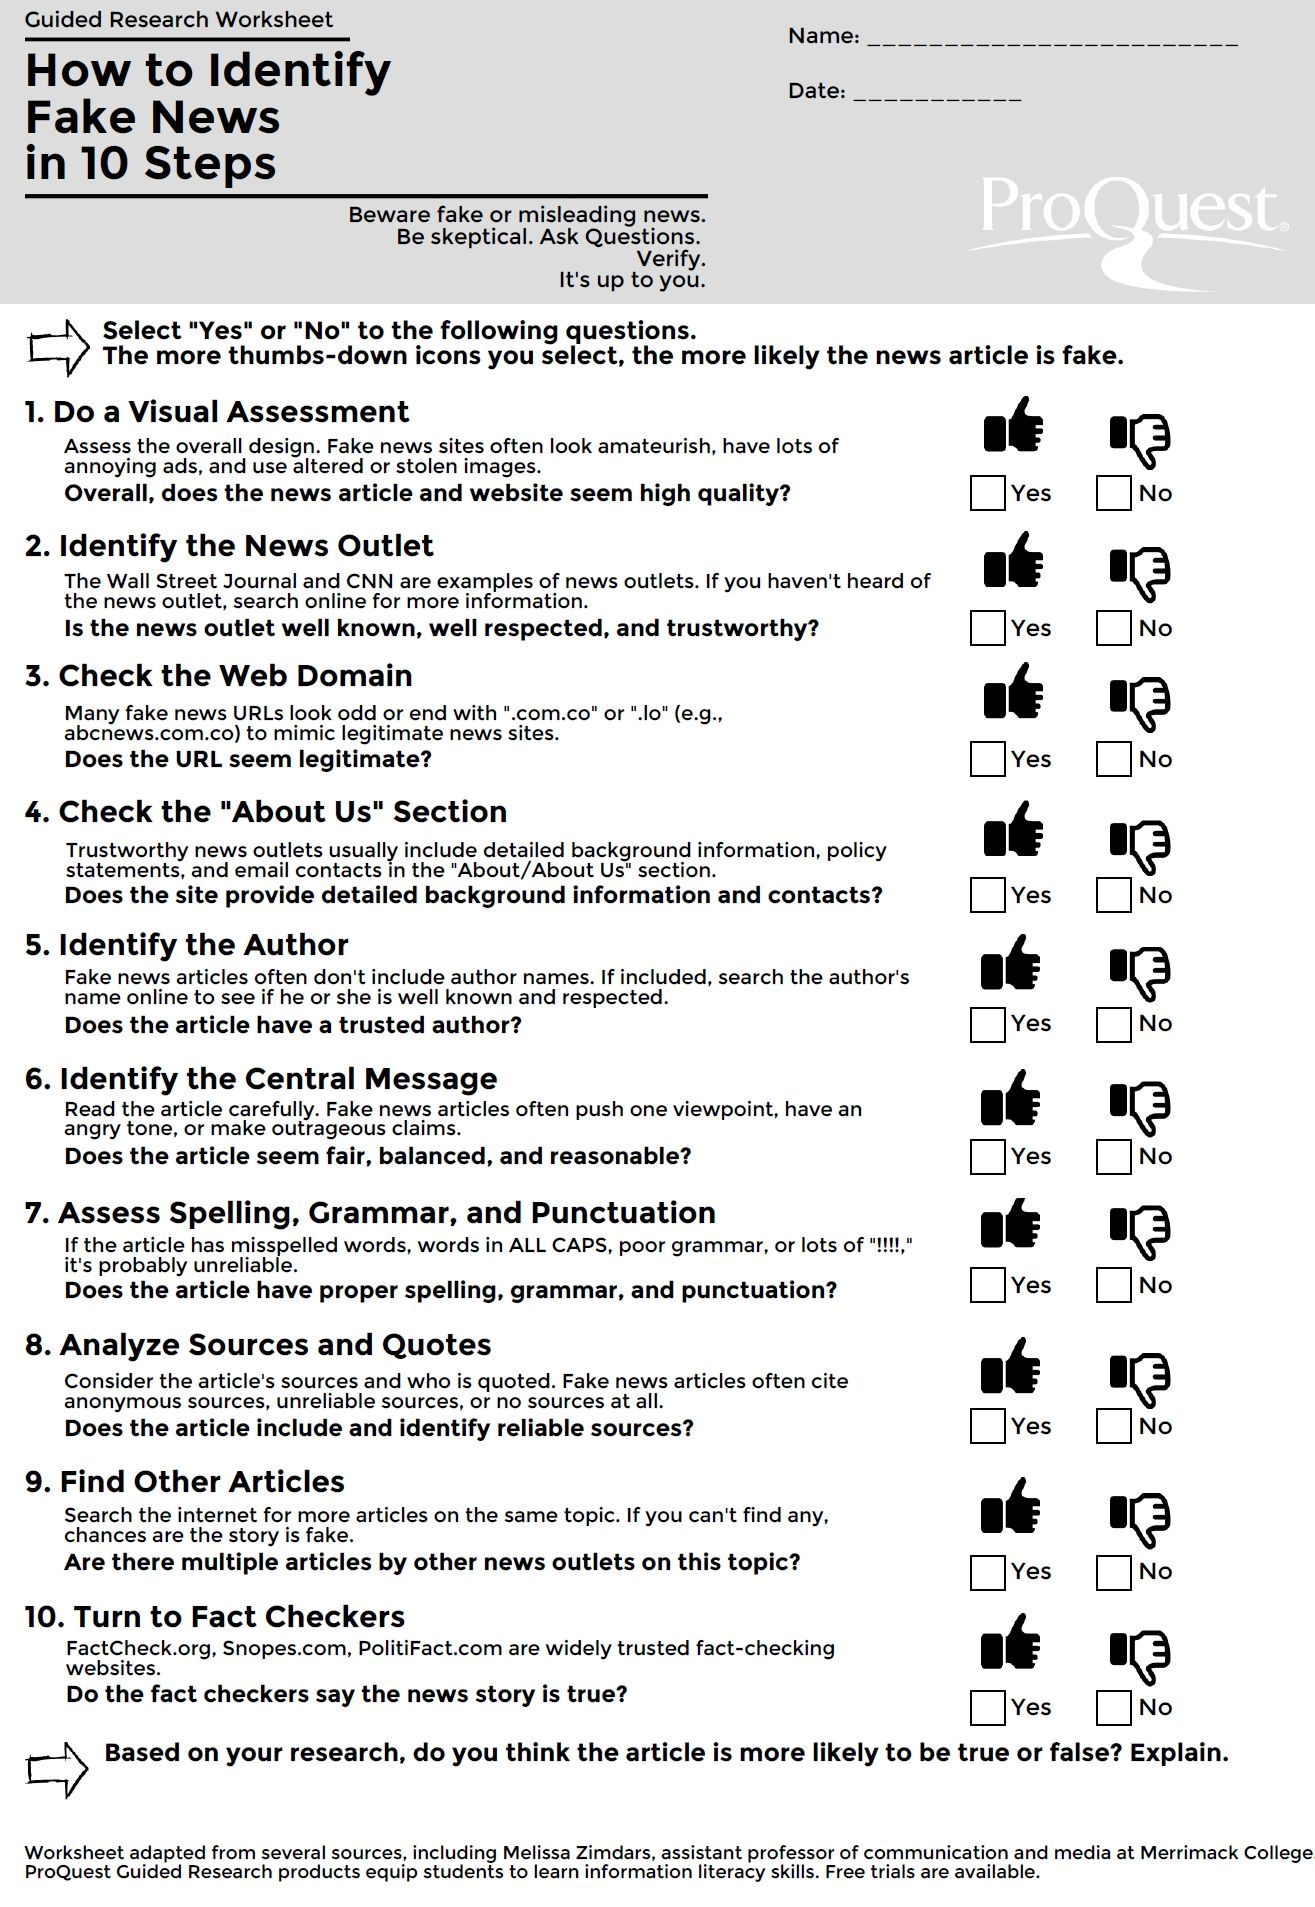 Share This » Blog Archive » How to Identify Fake News in 10 Steps (With  images)   Fake news lessons [ 1907 x 1315 Pixel ]